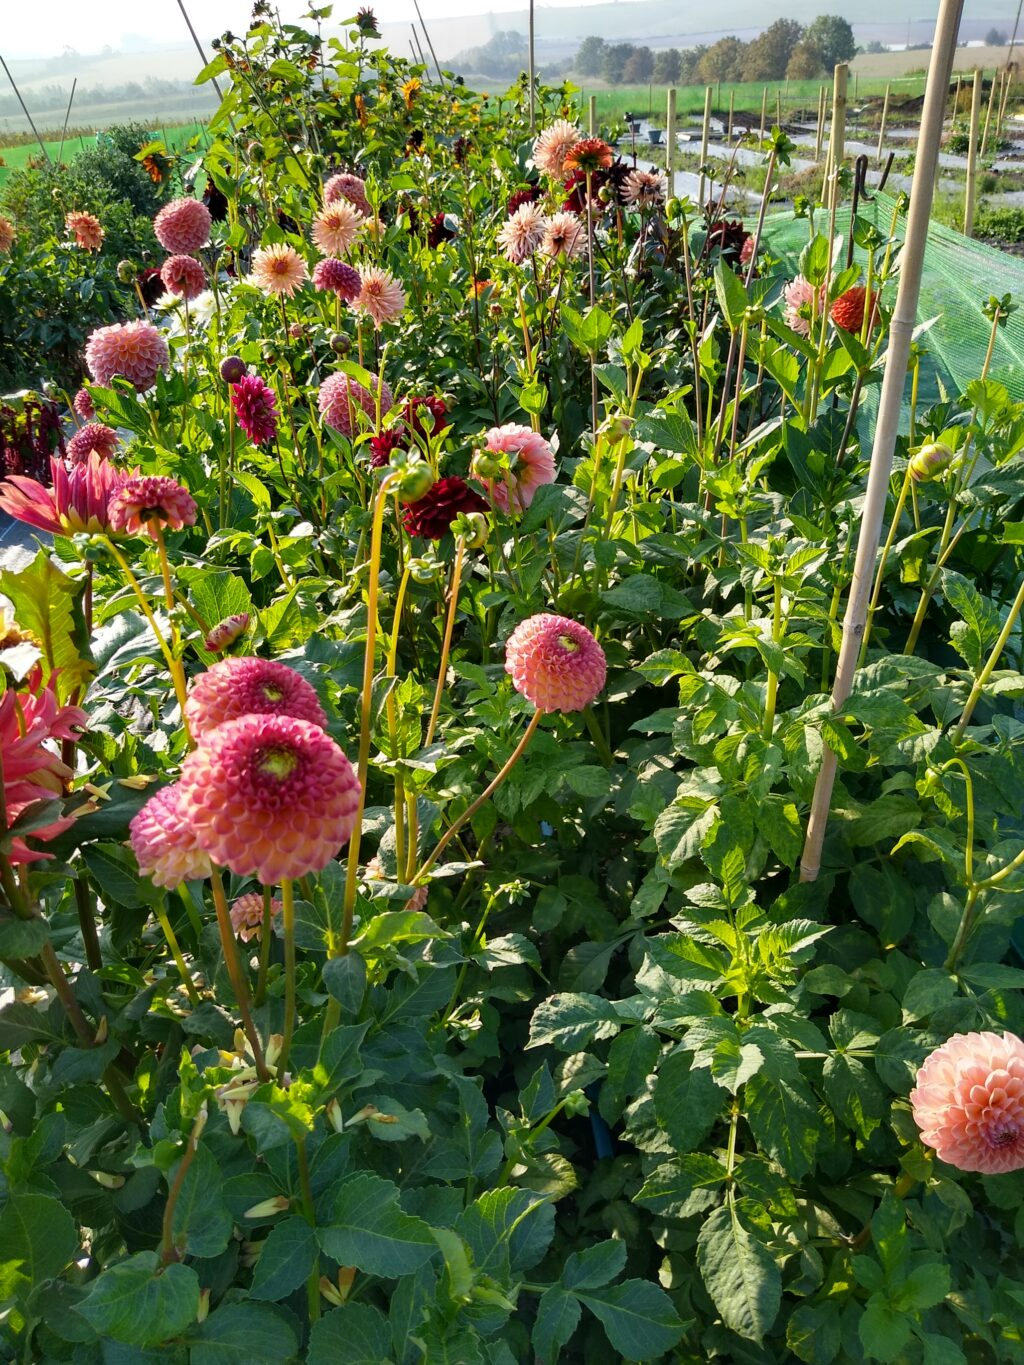 Peach pom pom dahlias seen here growing in the flower field at Nature's Posy.